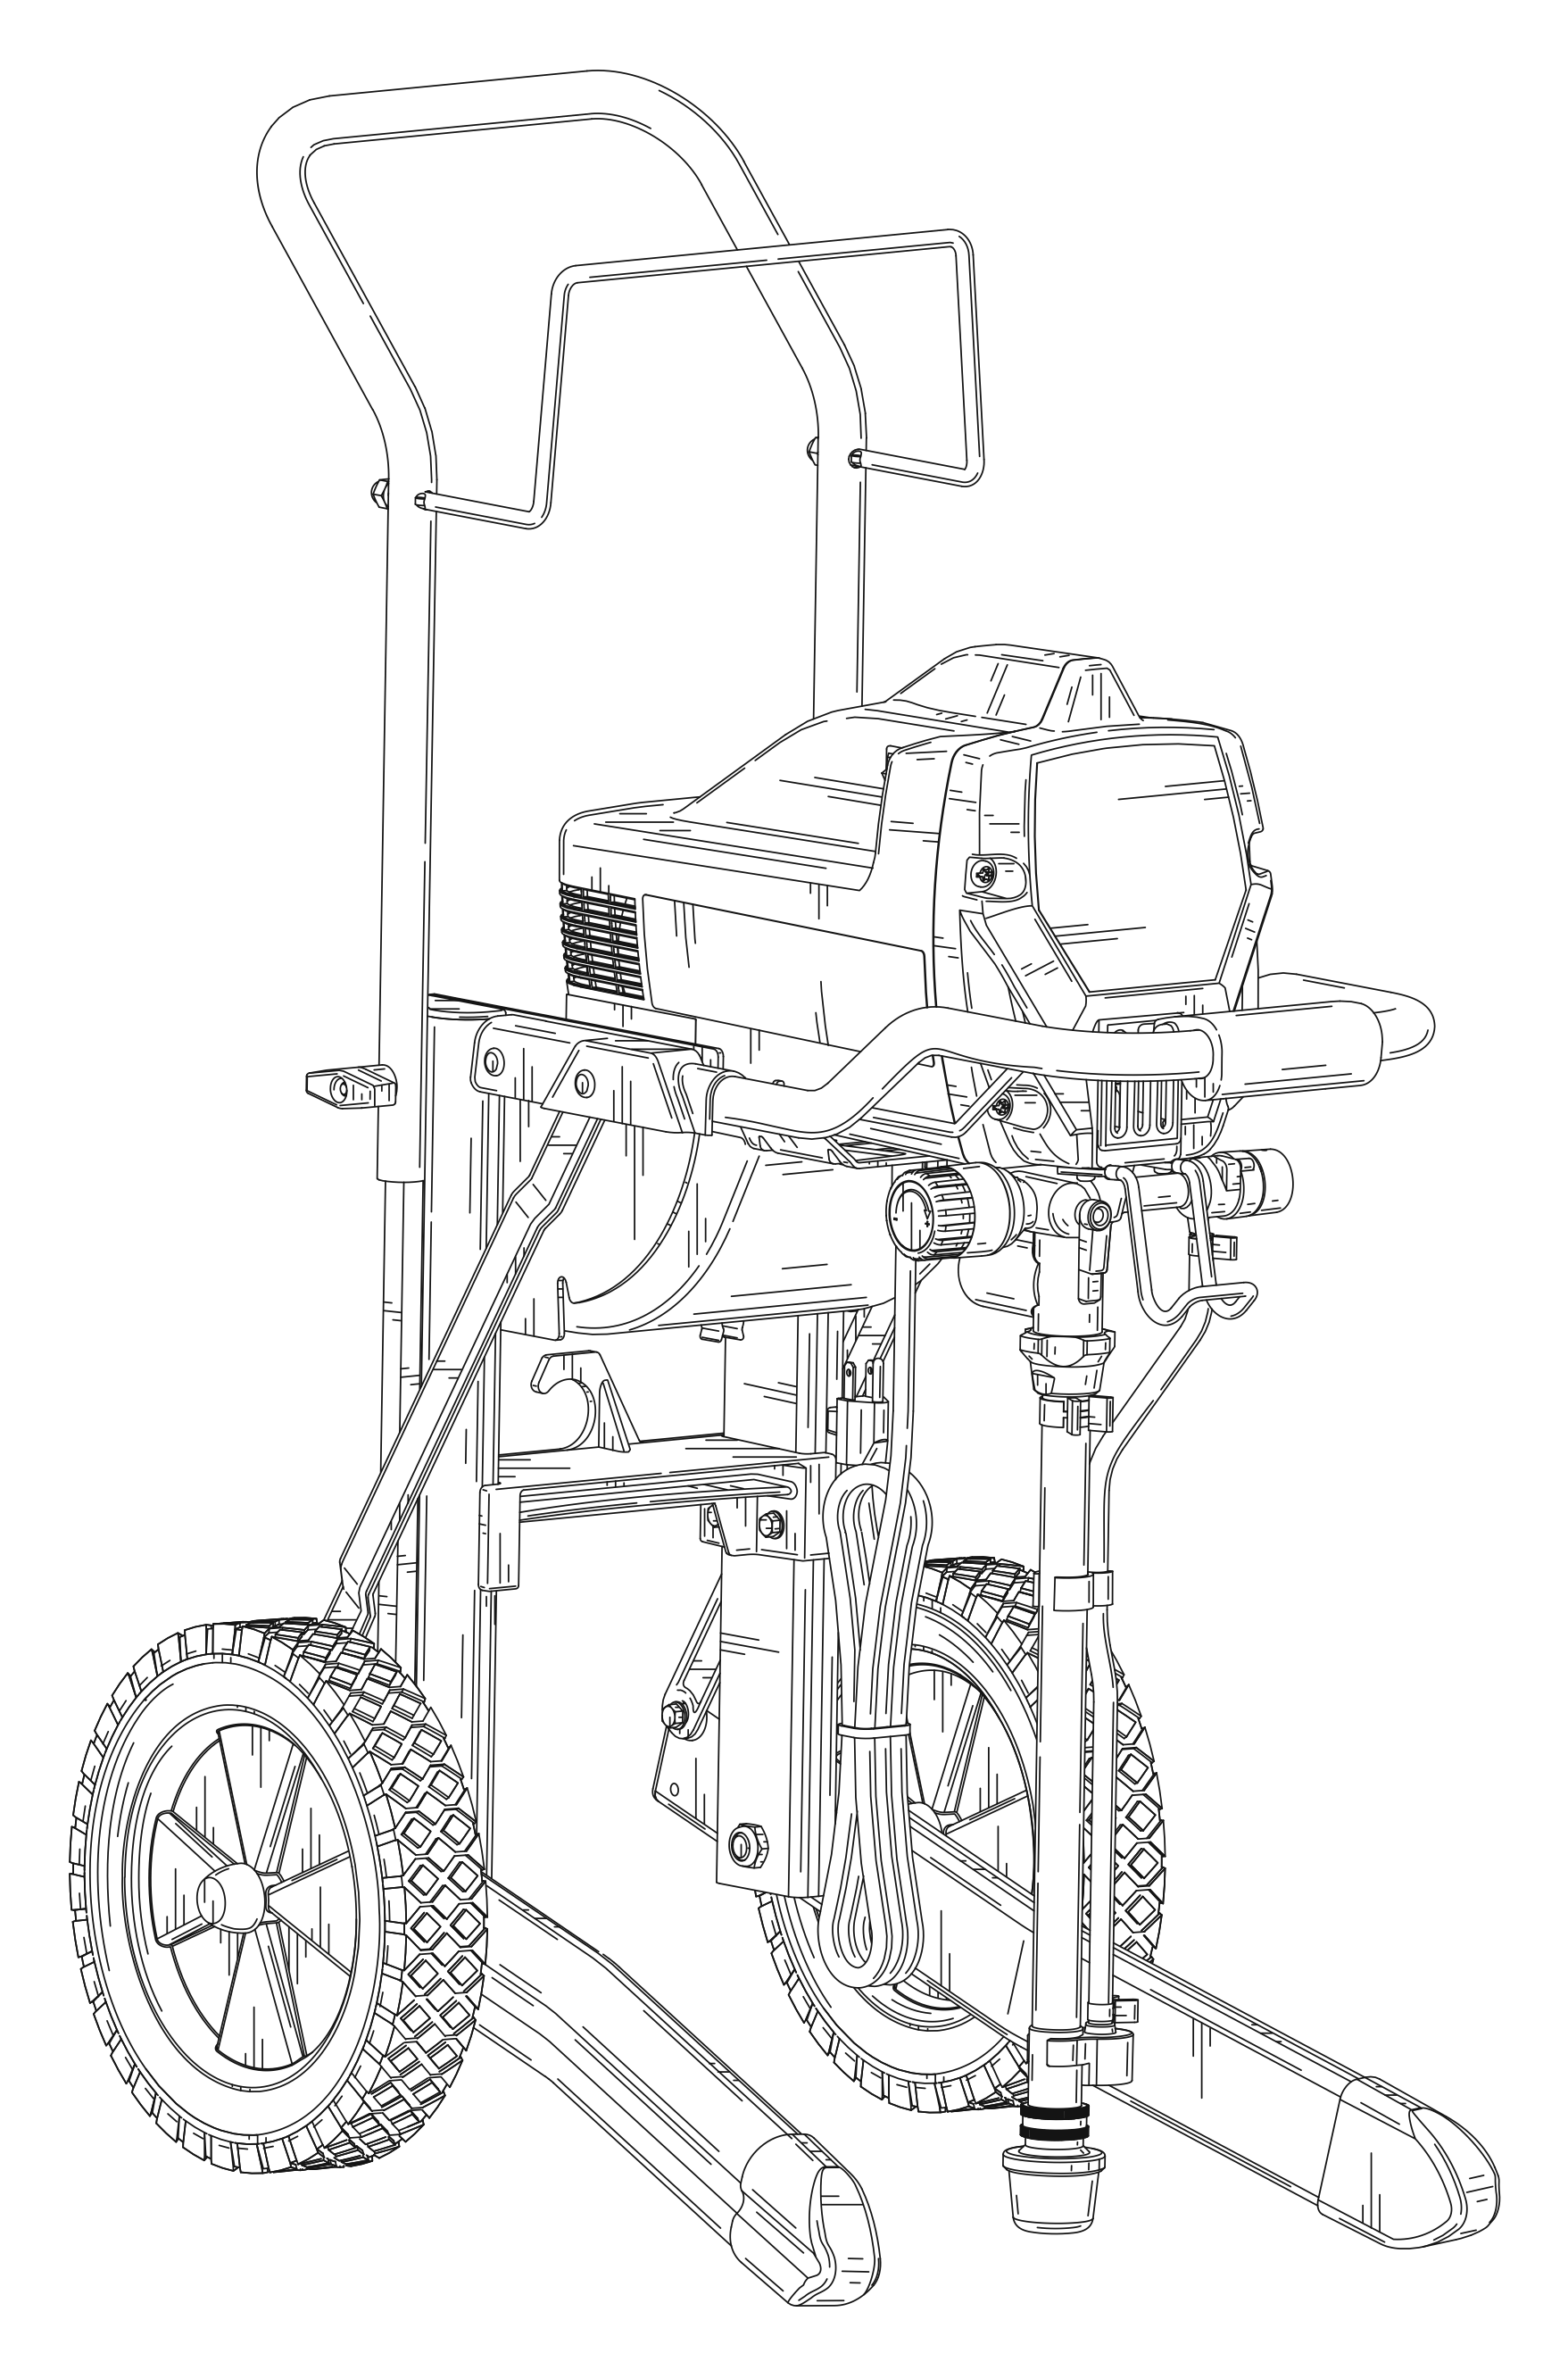 39_ptiserviceco_patent_drawing_design.png